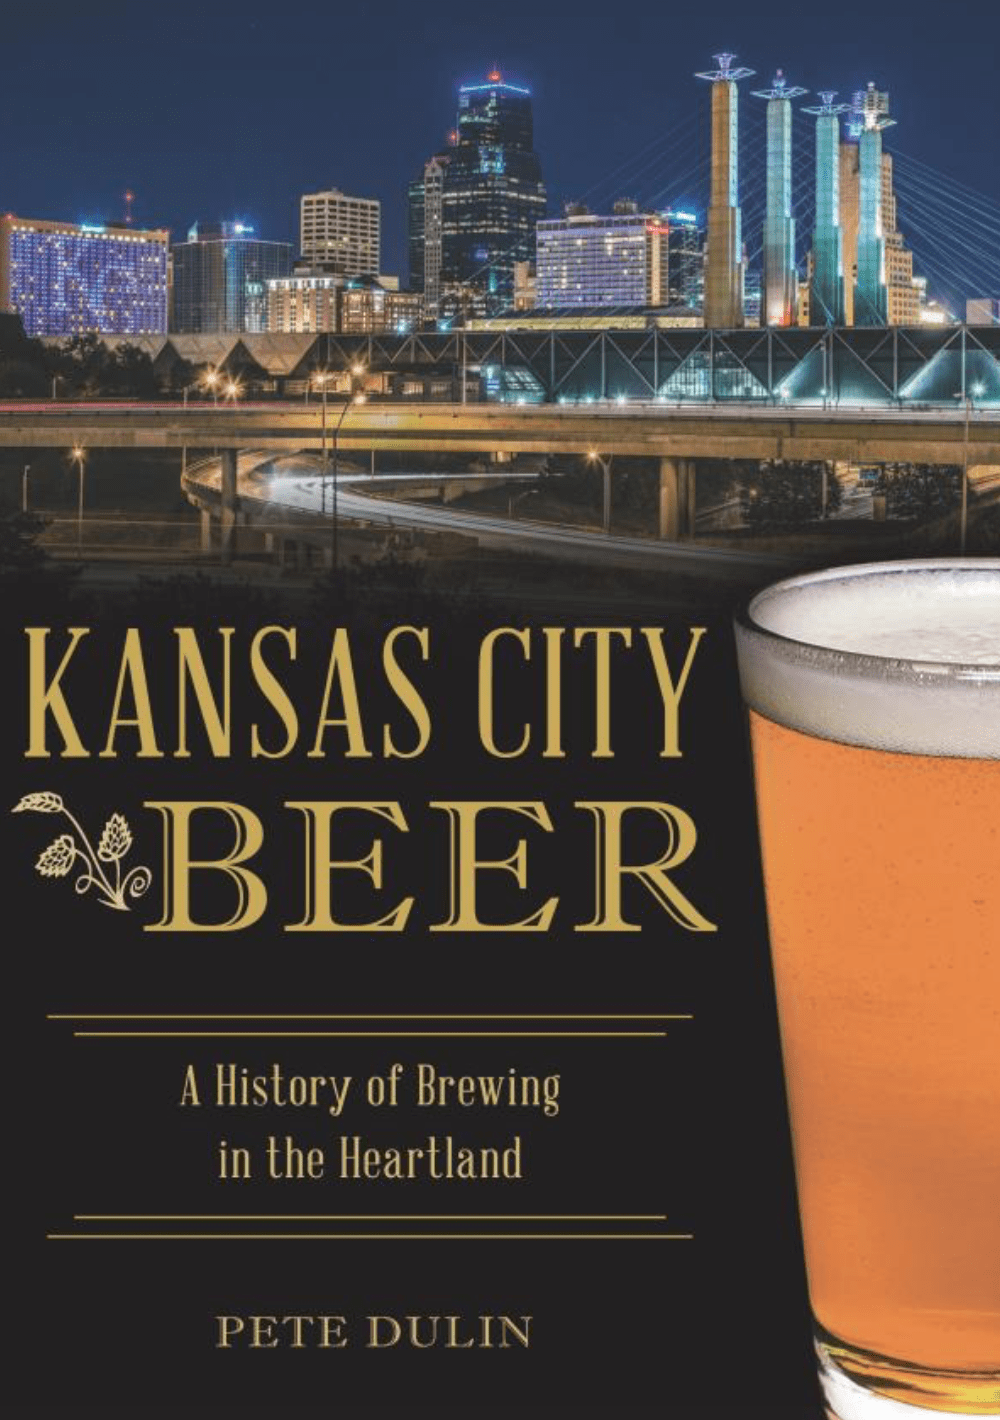 Kansas City Beer - A History of Brewing in the Heartland